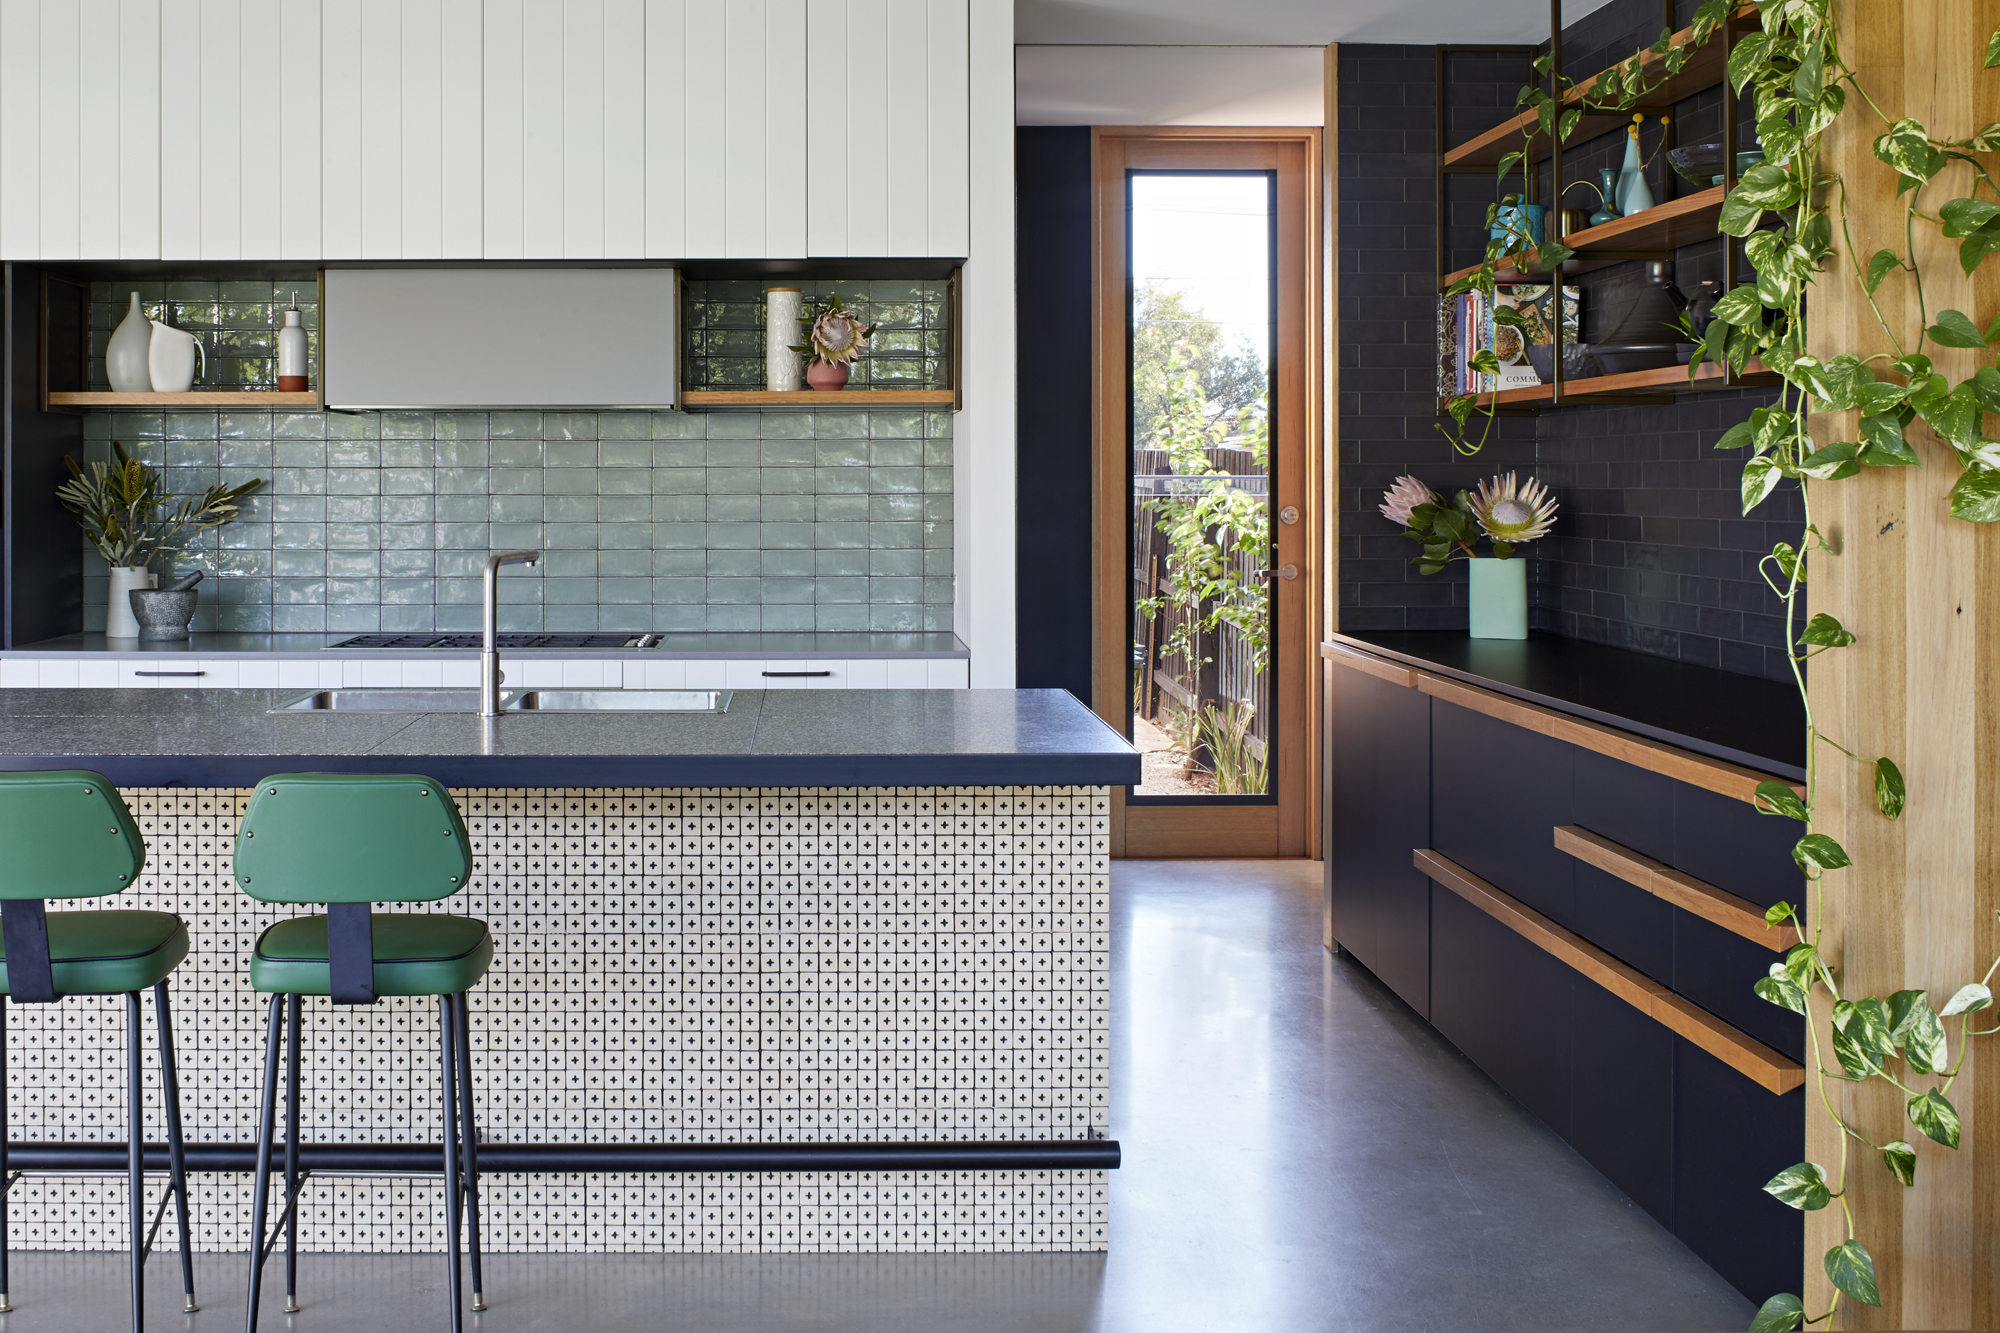 By Separating The Addition From The Original Home With A Courtyard